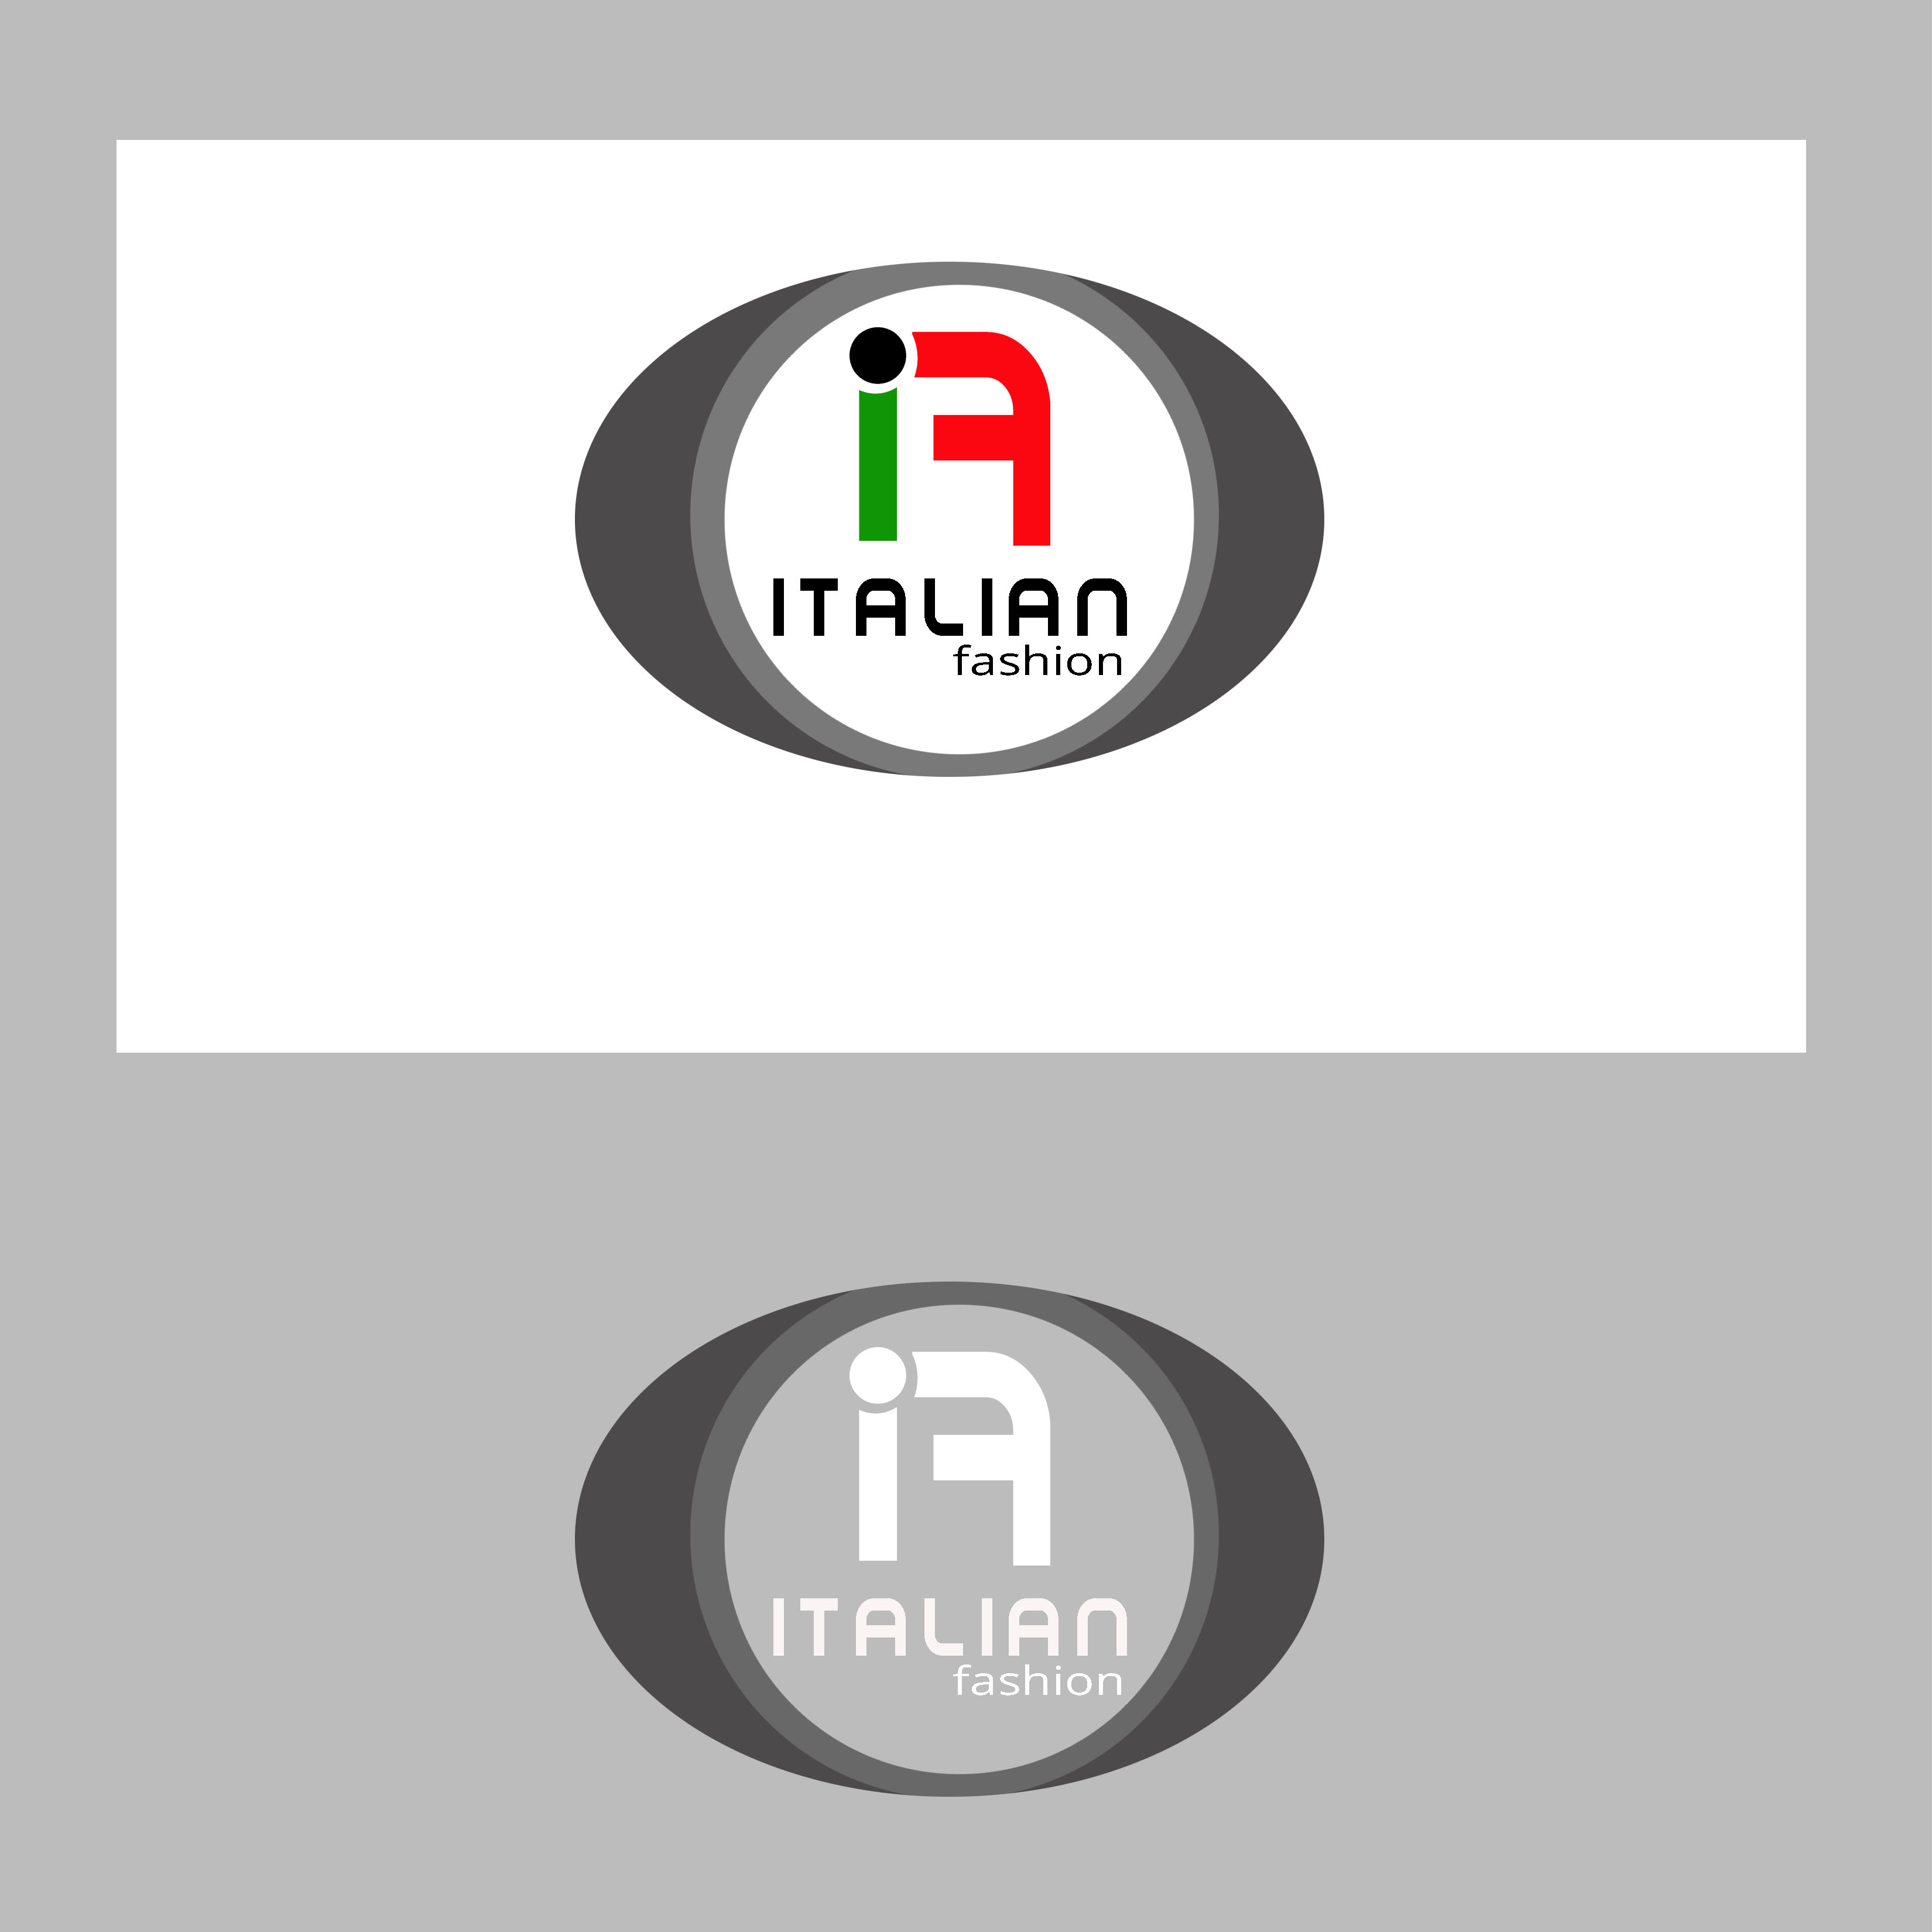 Logo Design by Allan Esclamado - Entry No. 97 in the Logo Design Contest Logo for Web Page ItalianFashion.cz.